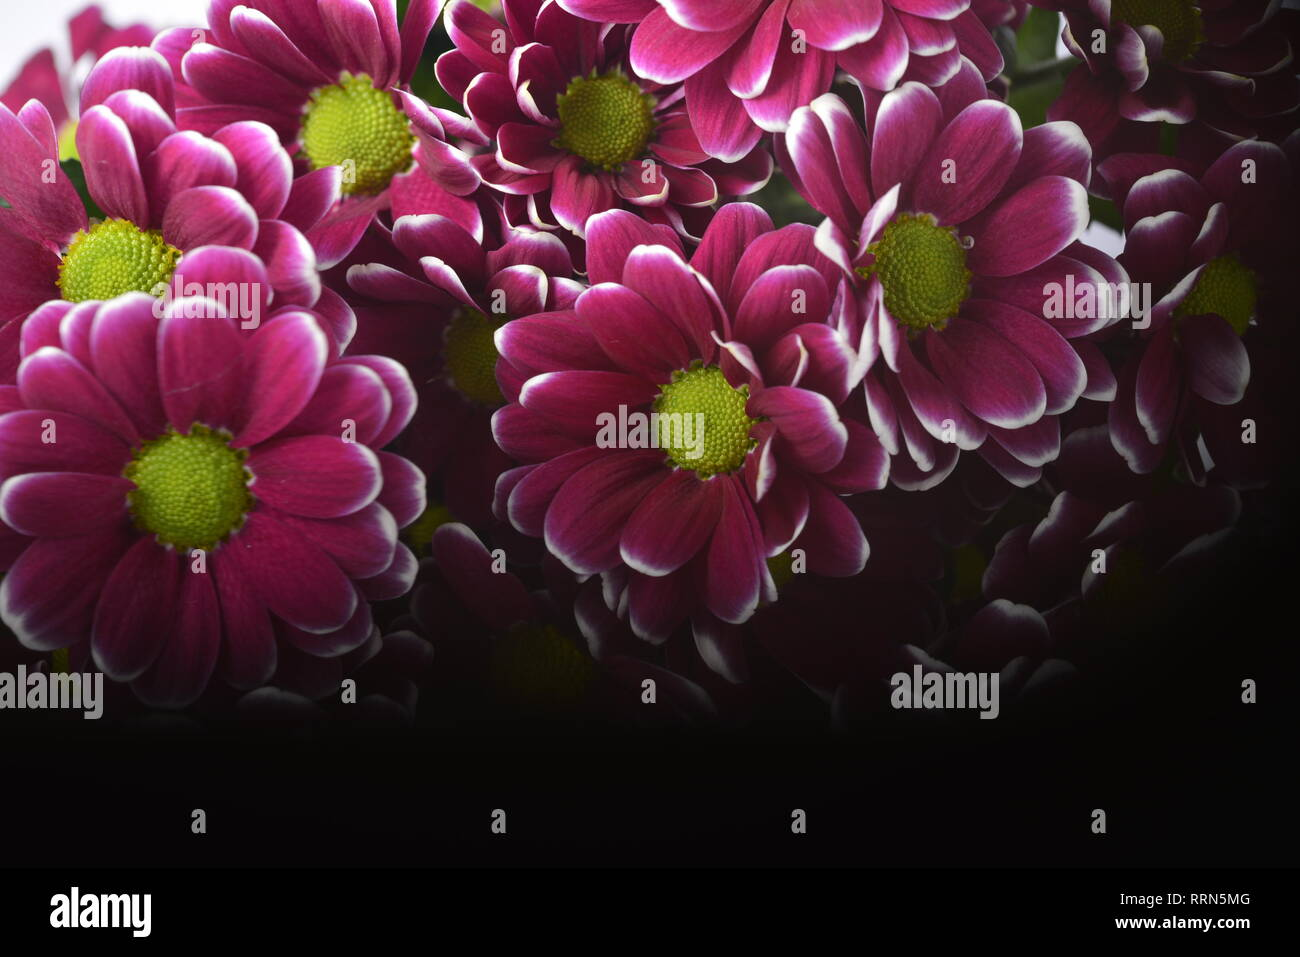 Flowers violet and white in makro - Stock Image